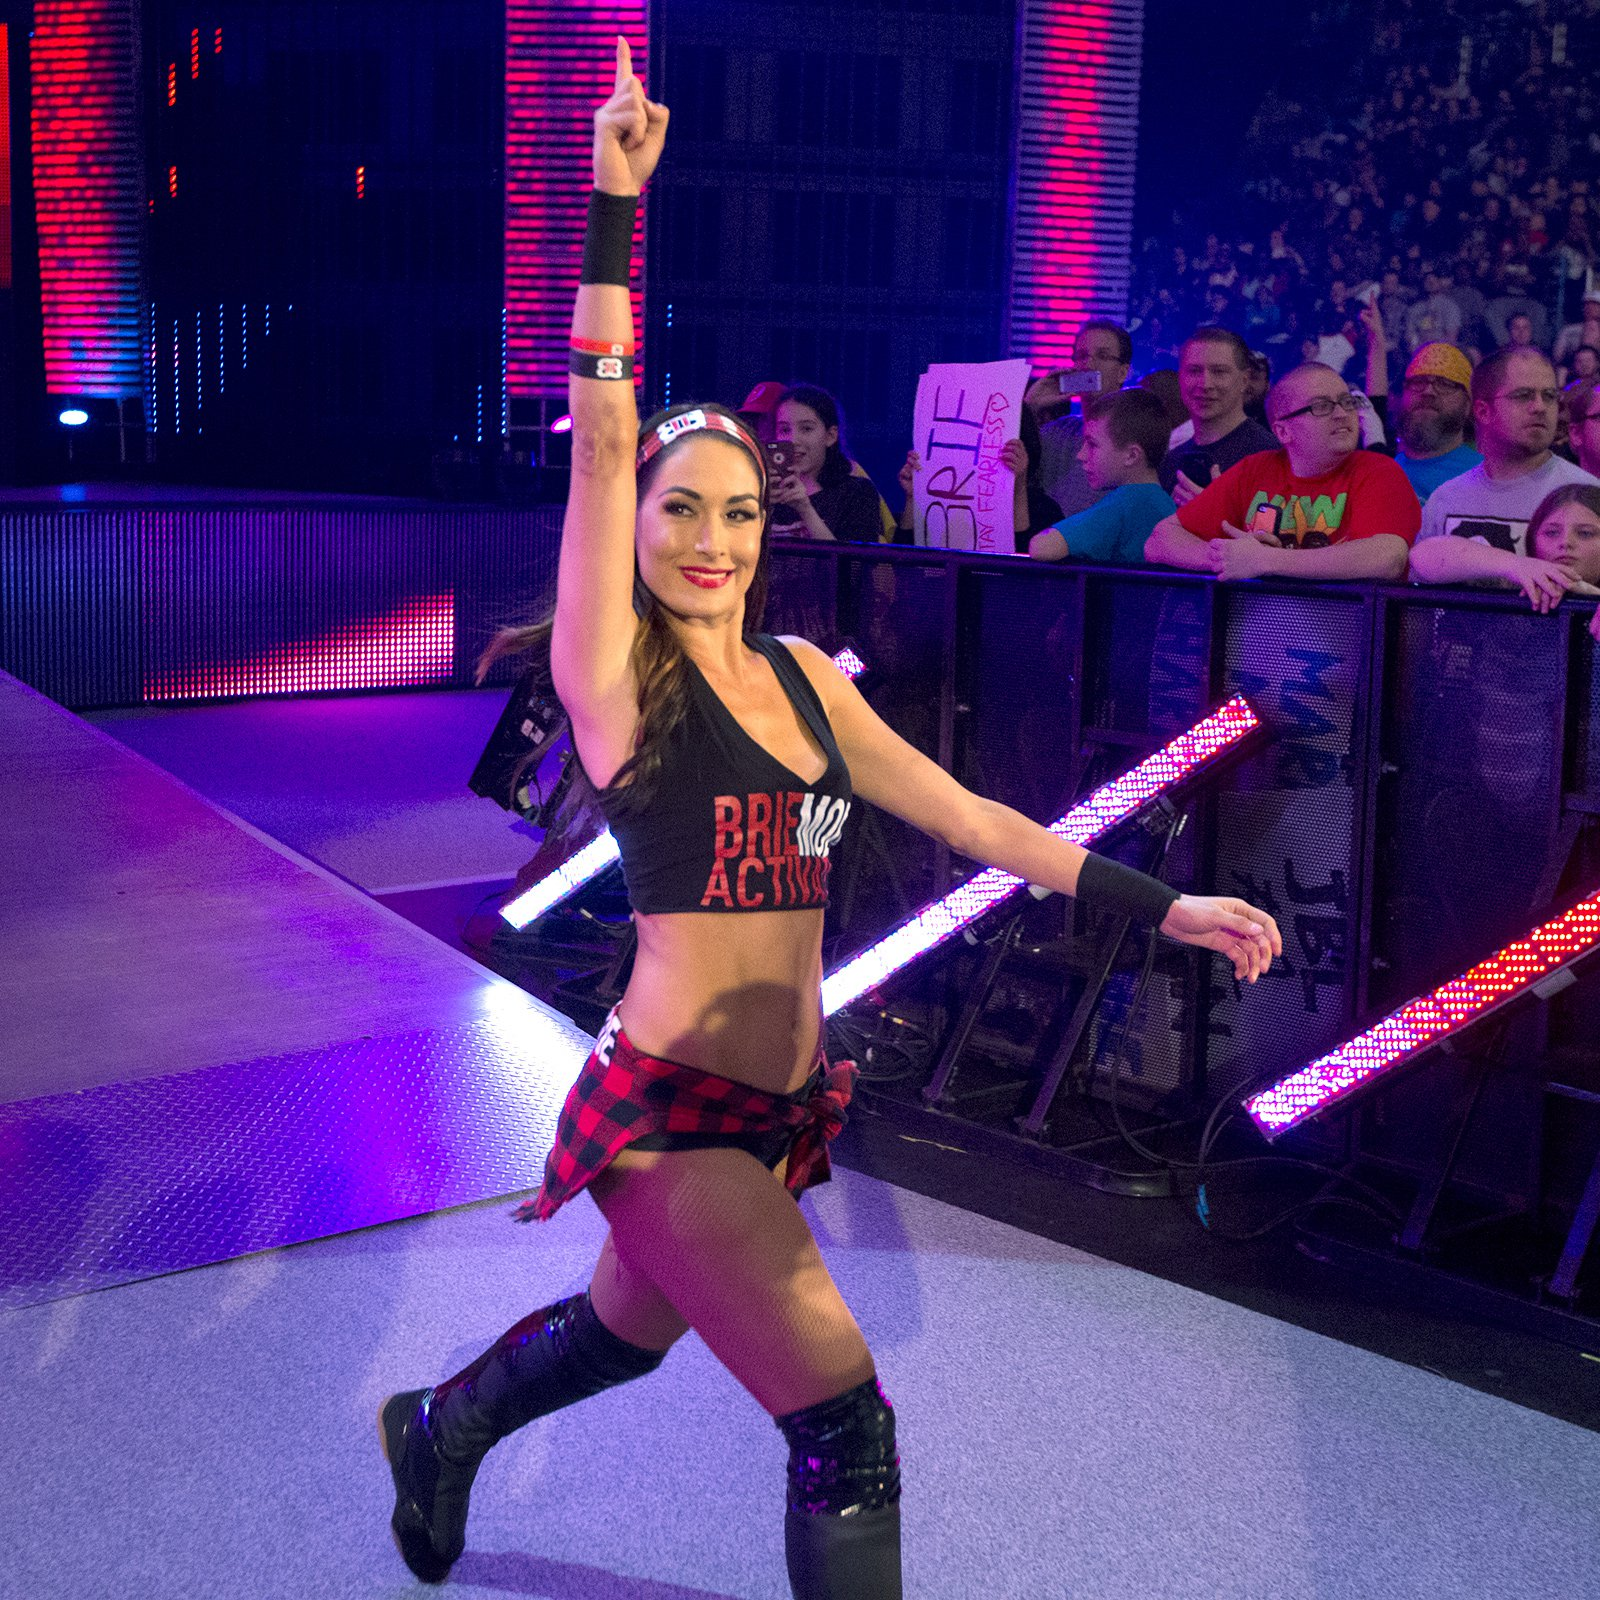 Brie Bella's Yes! Lock